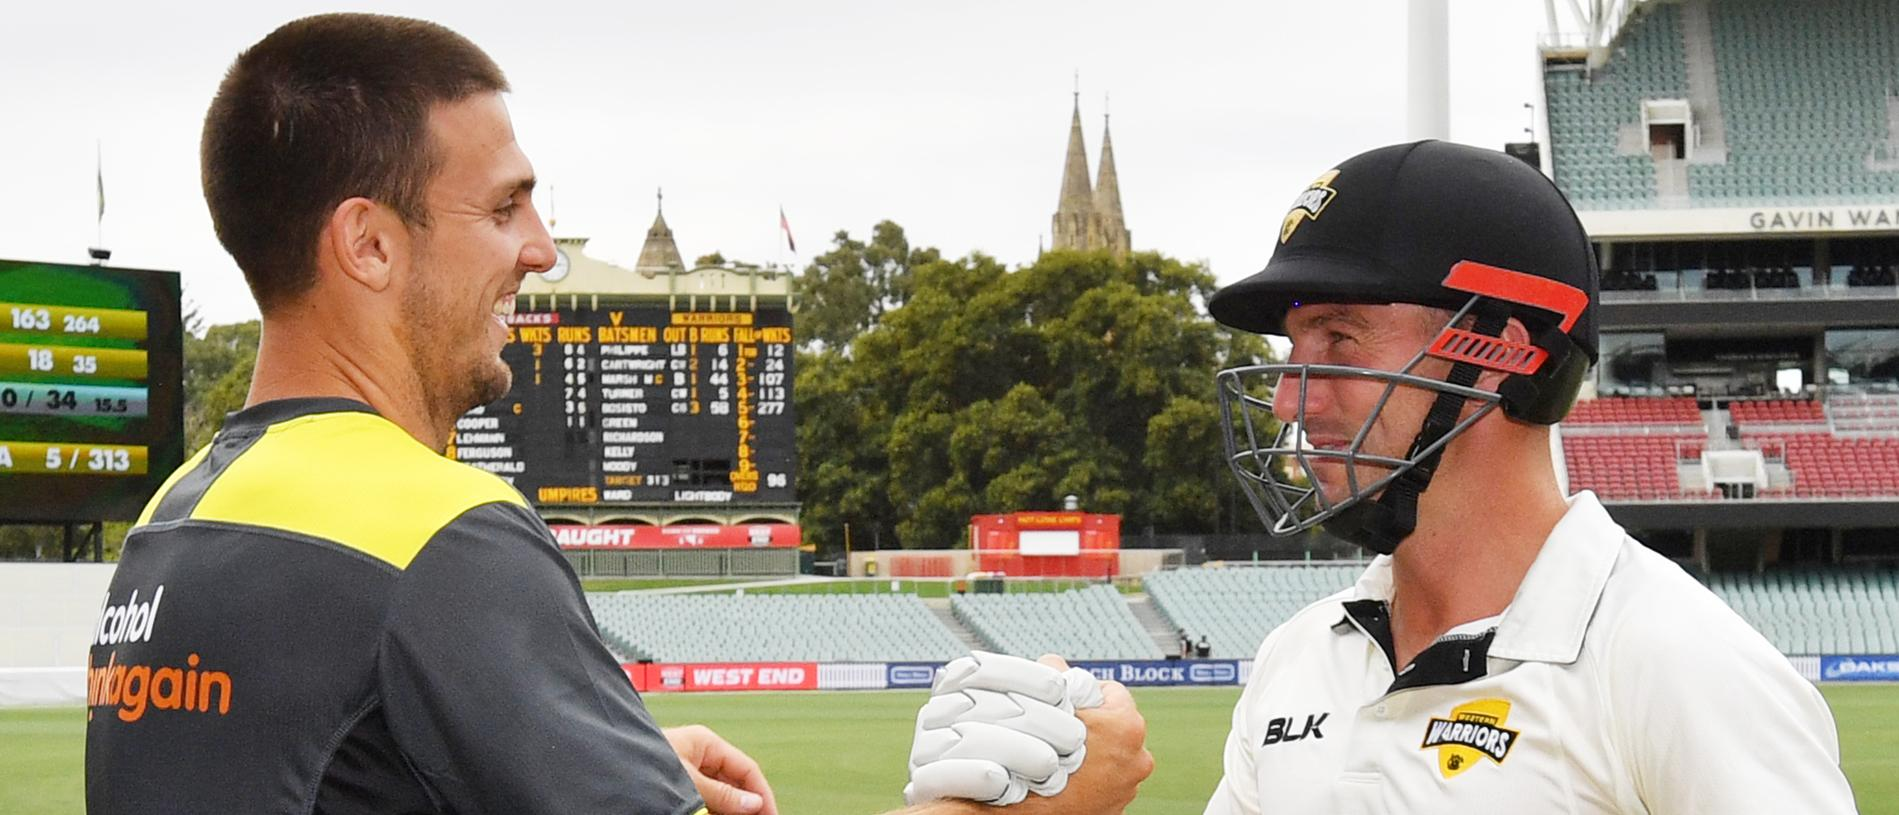 Mitch and Shaun Marsh of the Western Warriors celebrate after winning the game during day 4 of the round 4 of the JLT cricket match between South Australia and Western Australia at the Adelaide Oval in Adelaide, Monday, November 19, 2018. (AAP Image/David Mariuz) NO ARCHIVING, EDITORIAL USE ONLY, IMAGES TO BE USED FOR NEWS REPORTING PURPOSES ONLY, NO COMMERCIAL USE WHATSOEVER, NO USE IN BOOKS WITHOUT PRIOR WRITTEN CONSENT FROM AAP